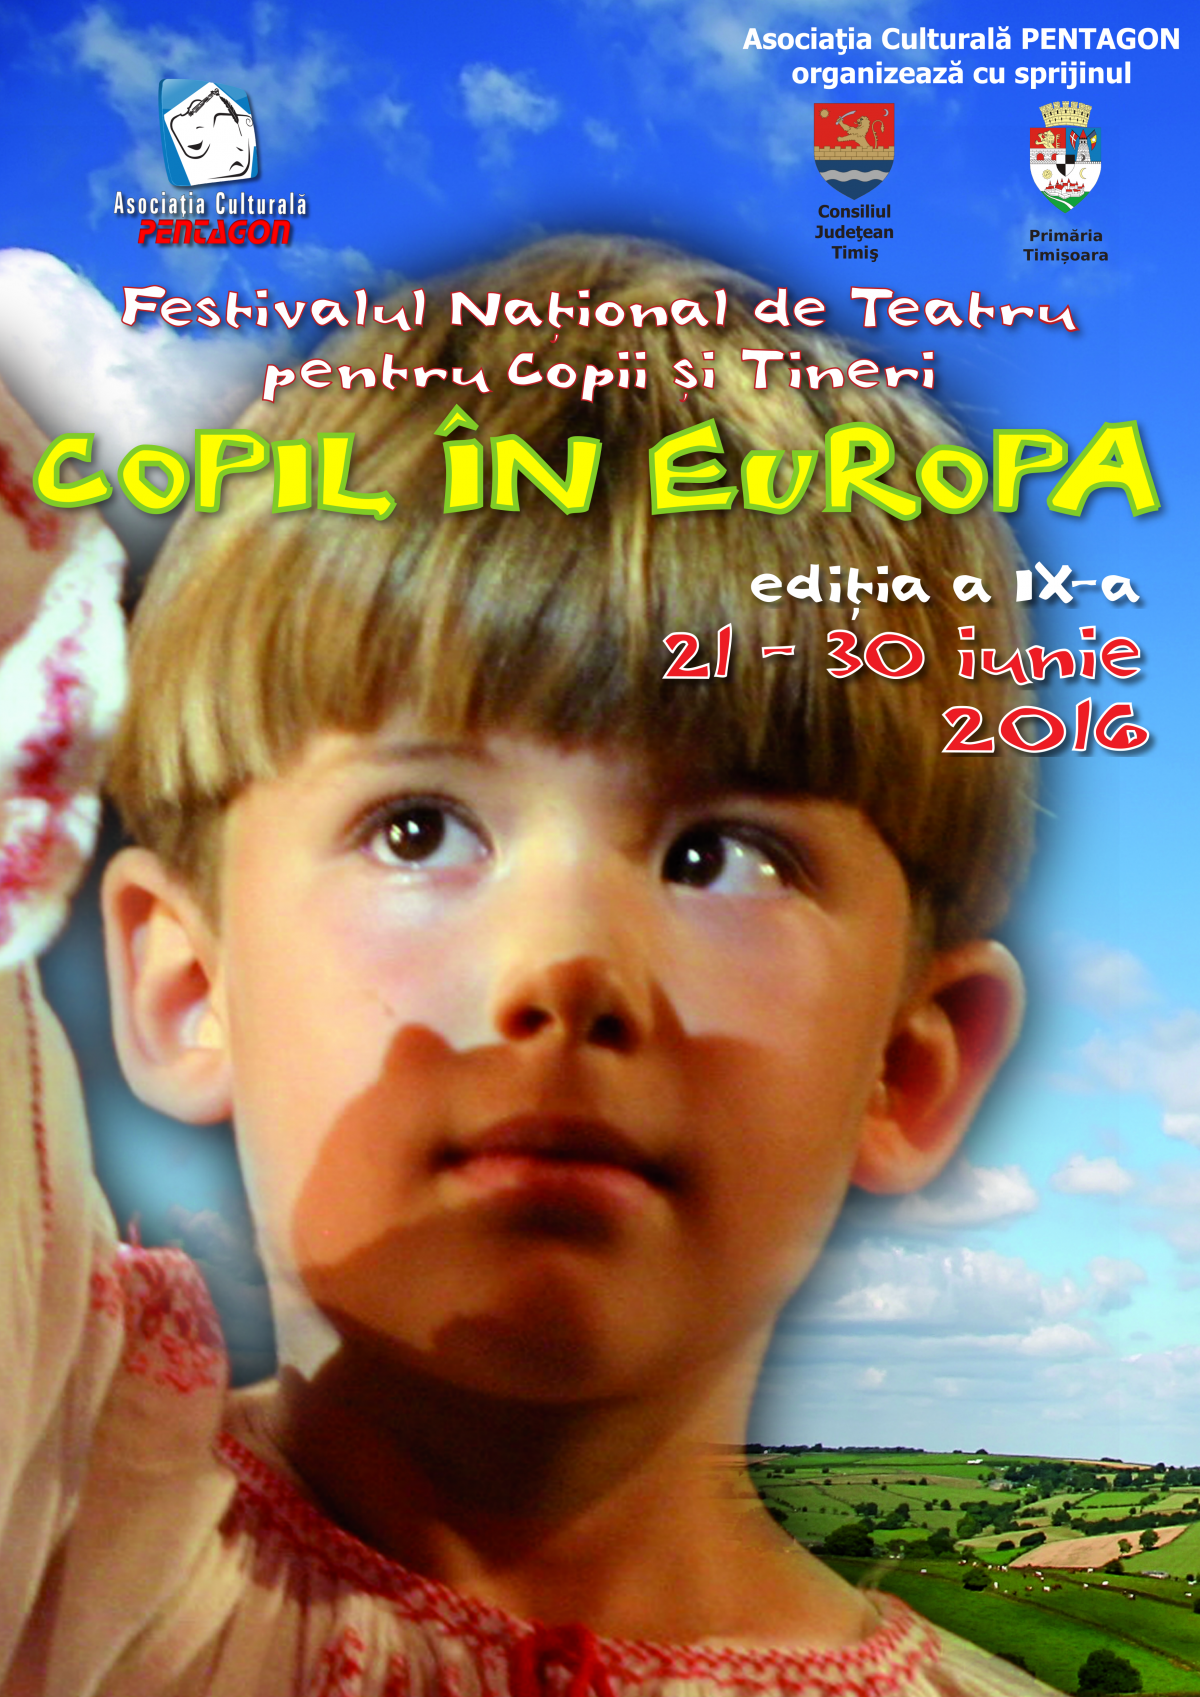 Afis Copil in europa_IX_2 (1)